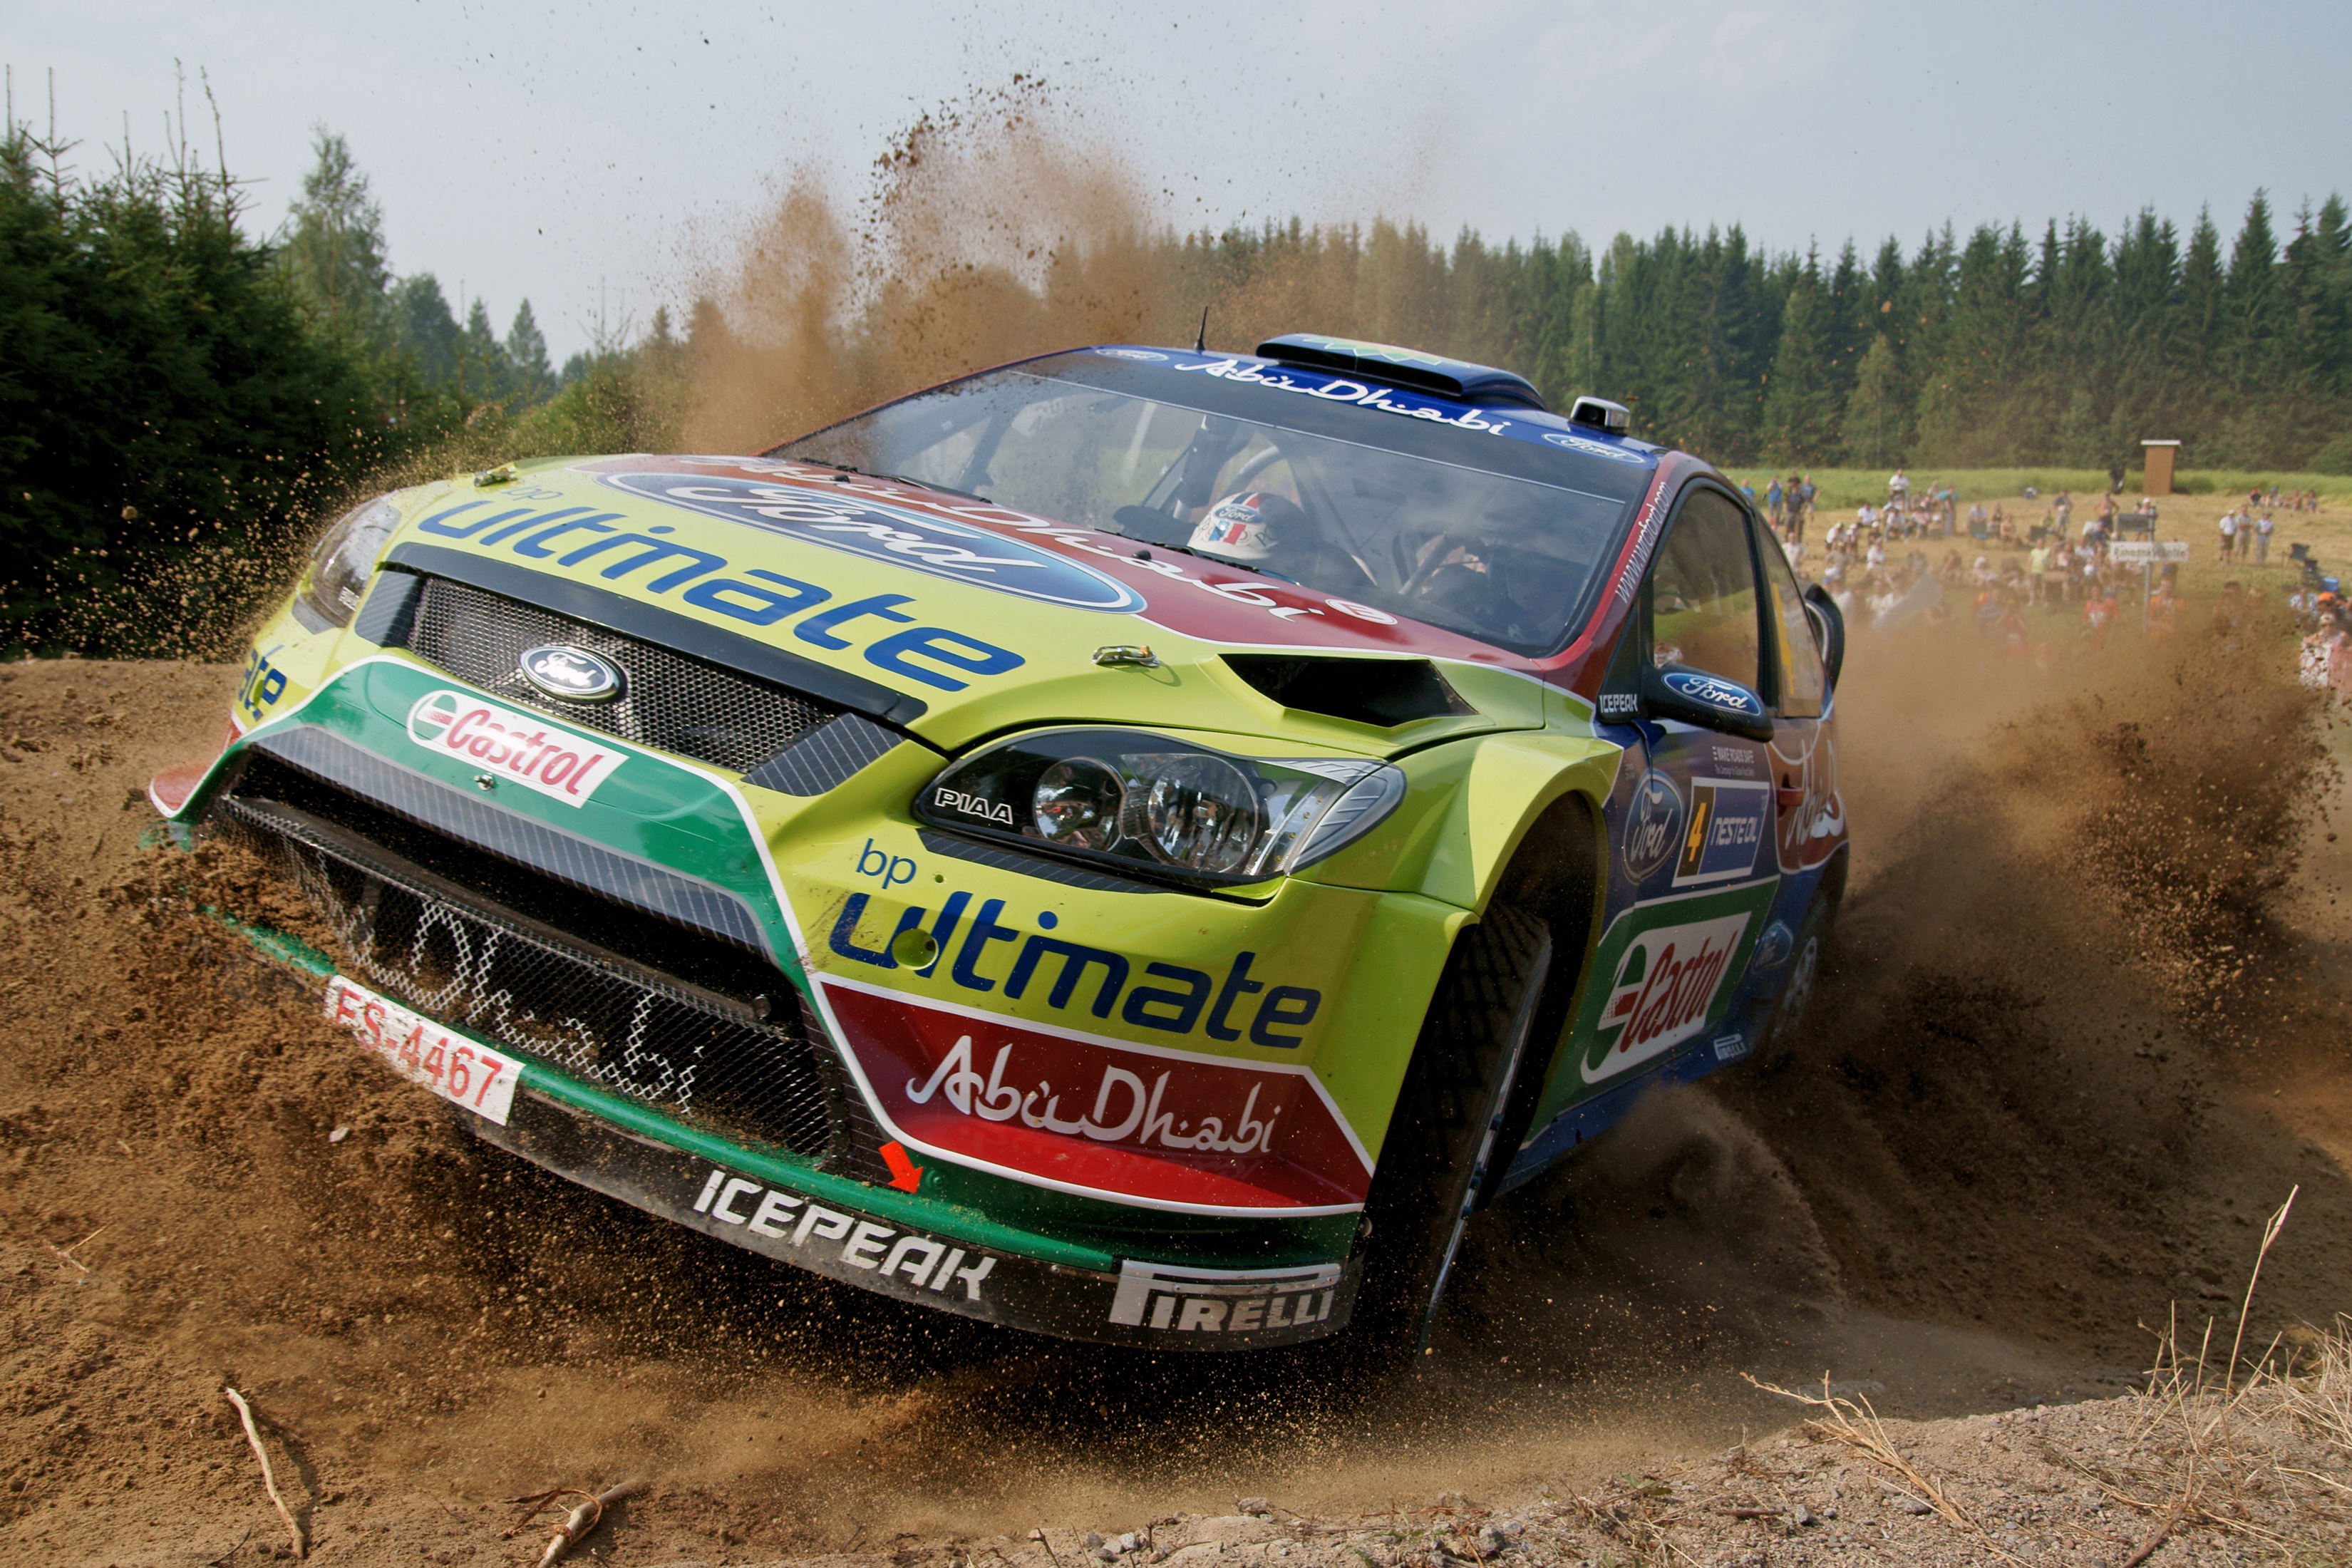 An automatic transmission is better for rally racing for a few reasons. Image source: Wikimedia Commons